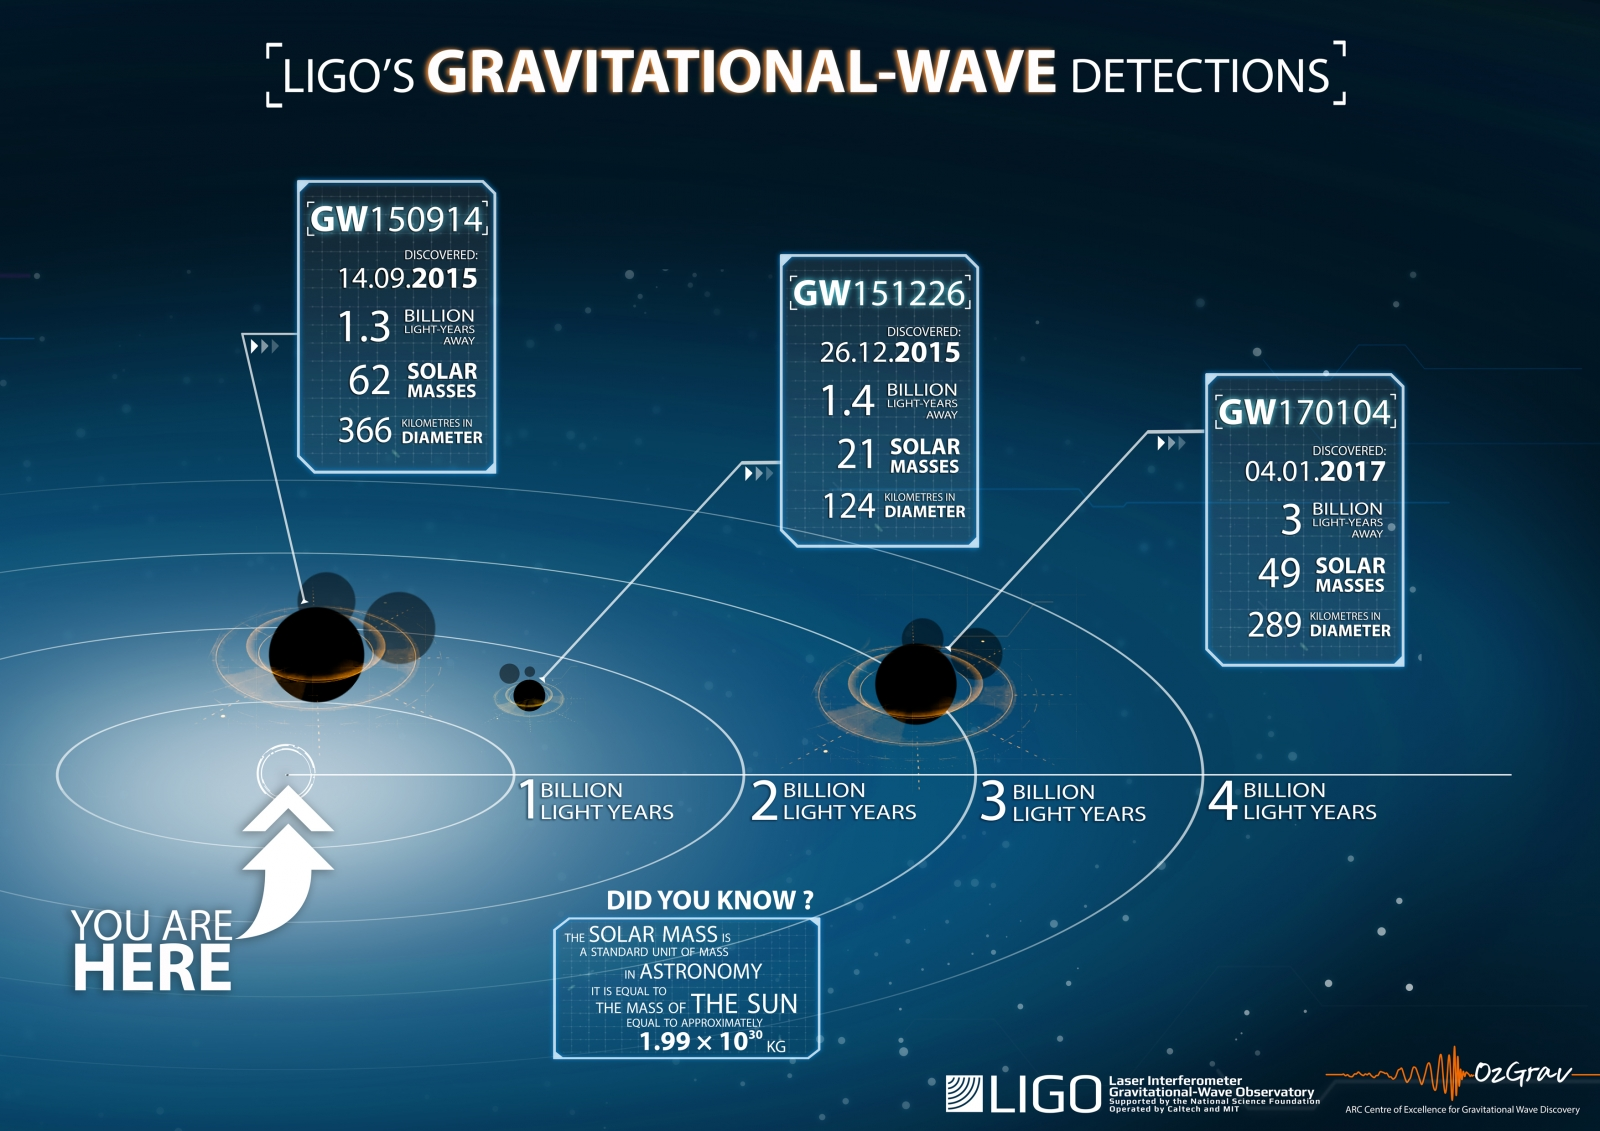 LIGO detects colliding black holes for third time